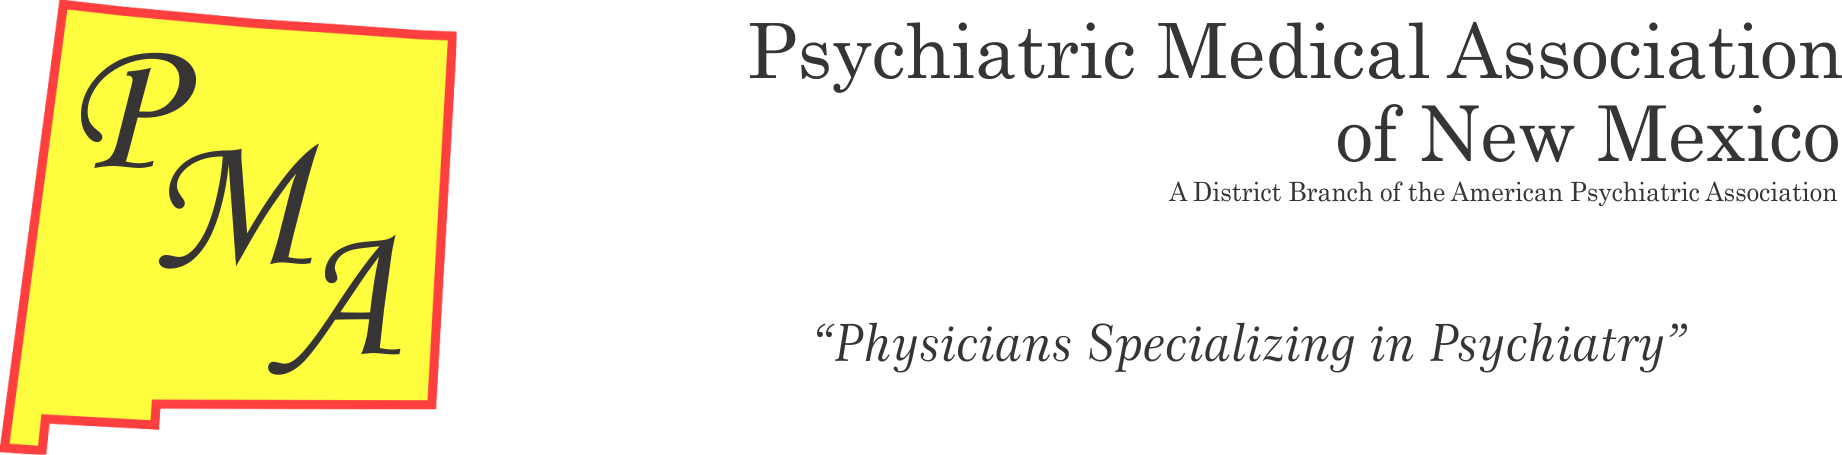 Psychiatric Medical Association of New Mexico